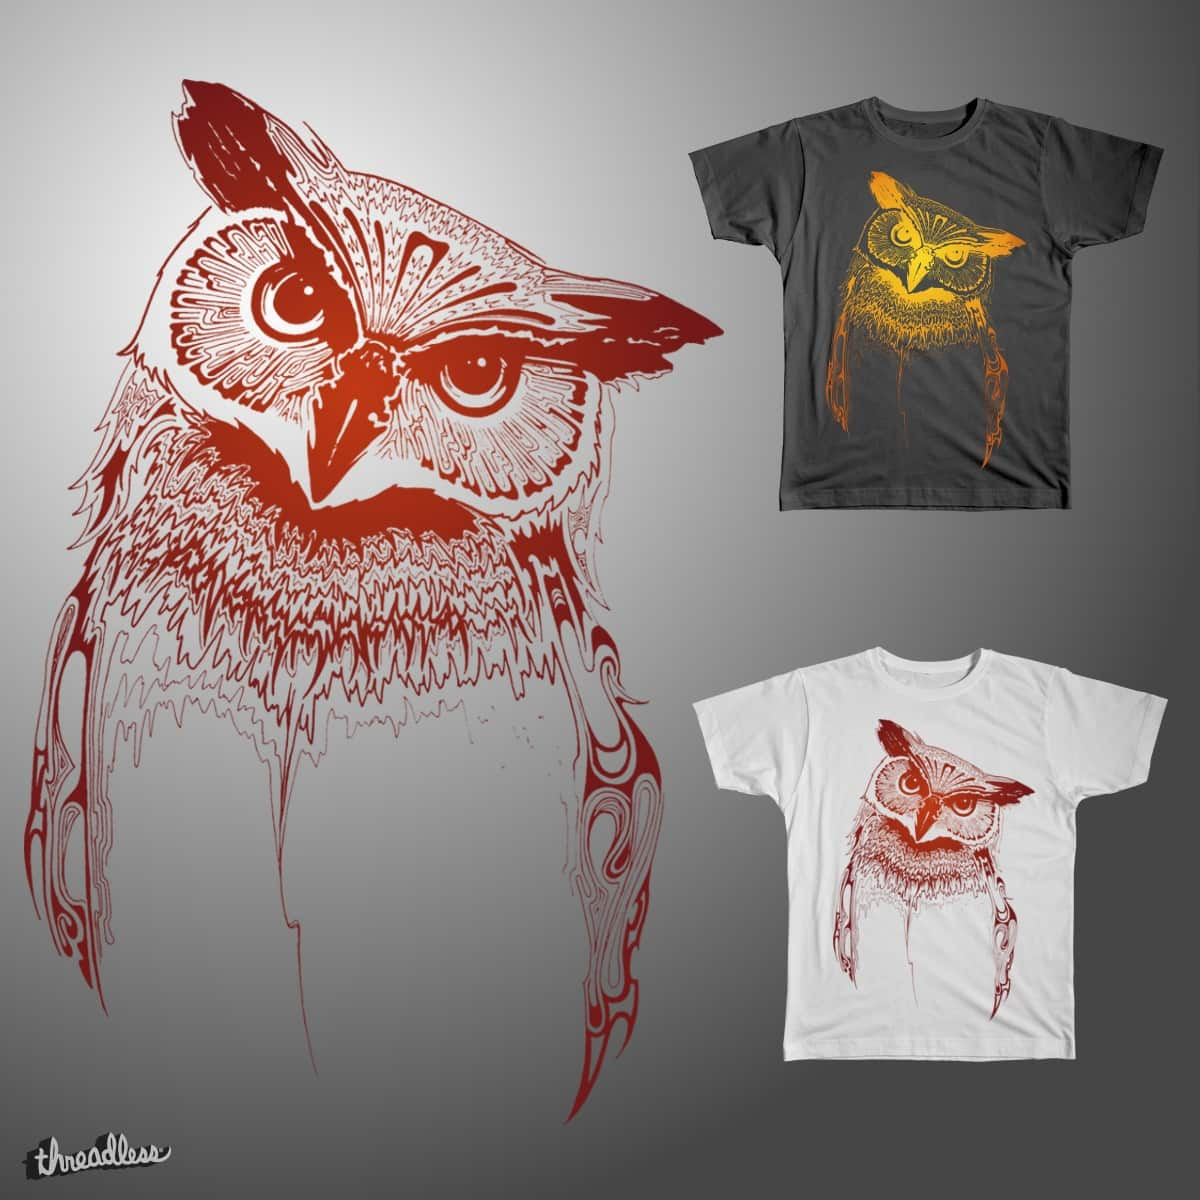 What a Hoot by com00020 on Threadless